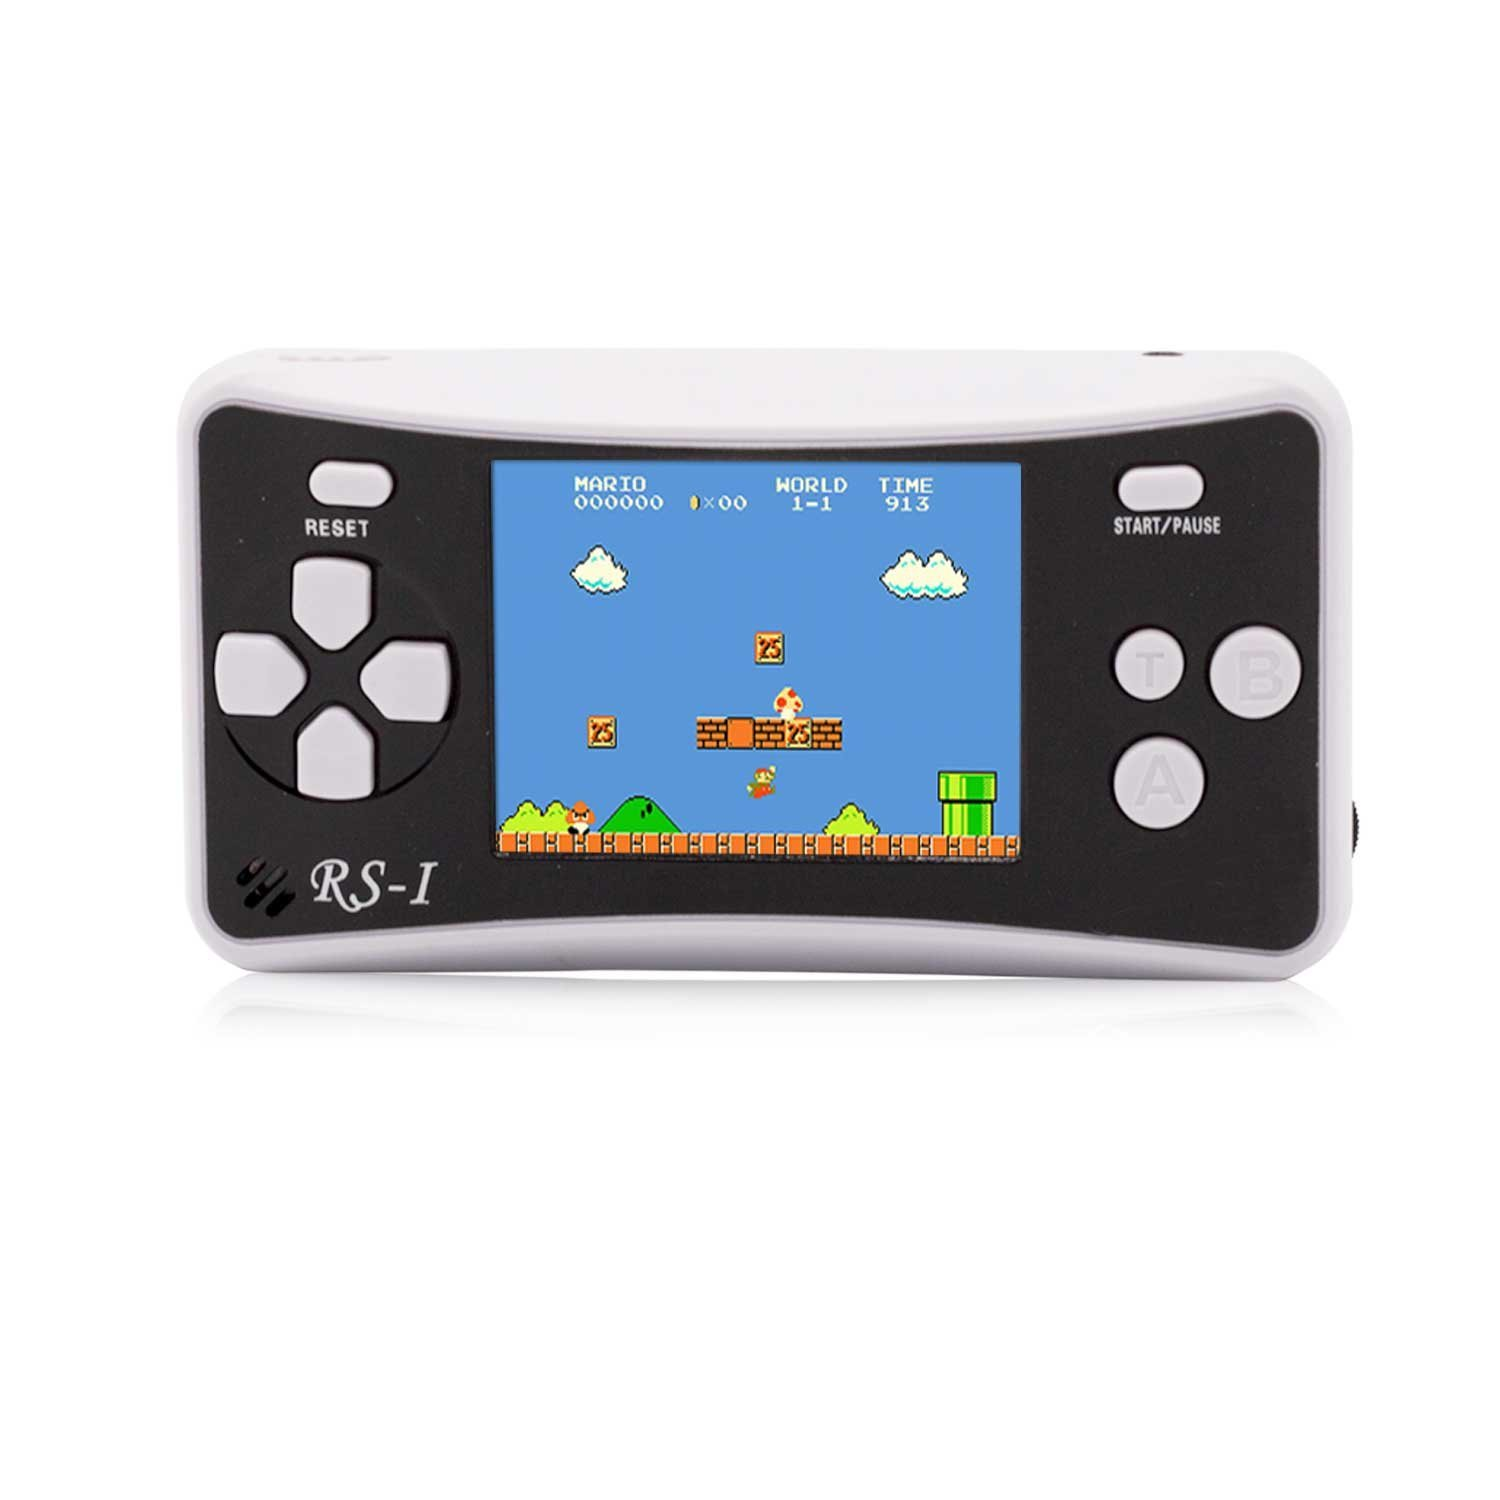 OctiveMe RS-1 Portable Video Game Player for Children|Retro Handheld Game Console|2.5'' LCD,Built-in 152 Classic Games Entertainment|Best Gift for Kids (Black)